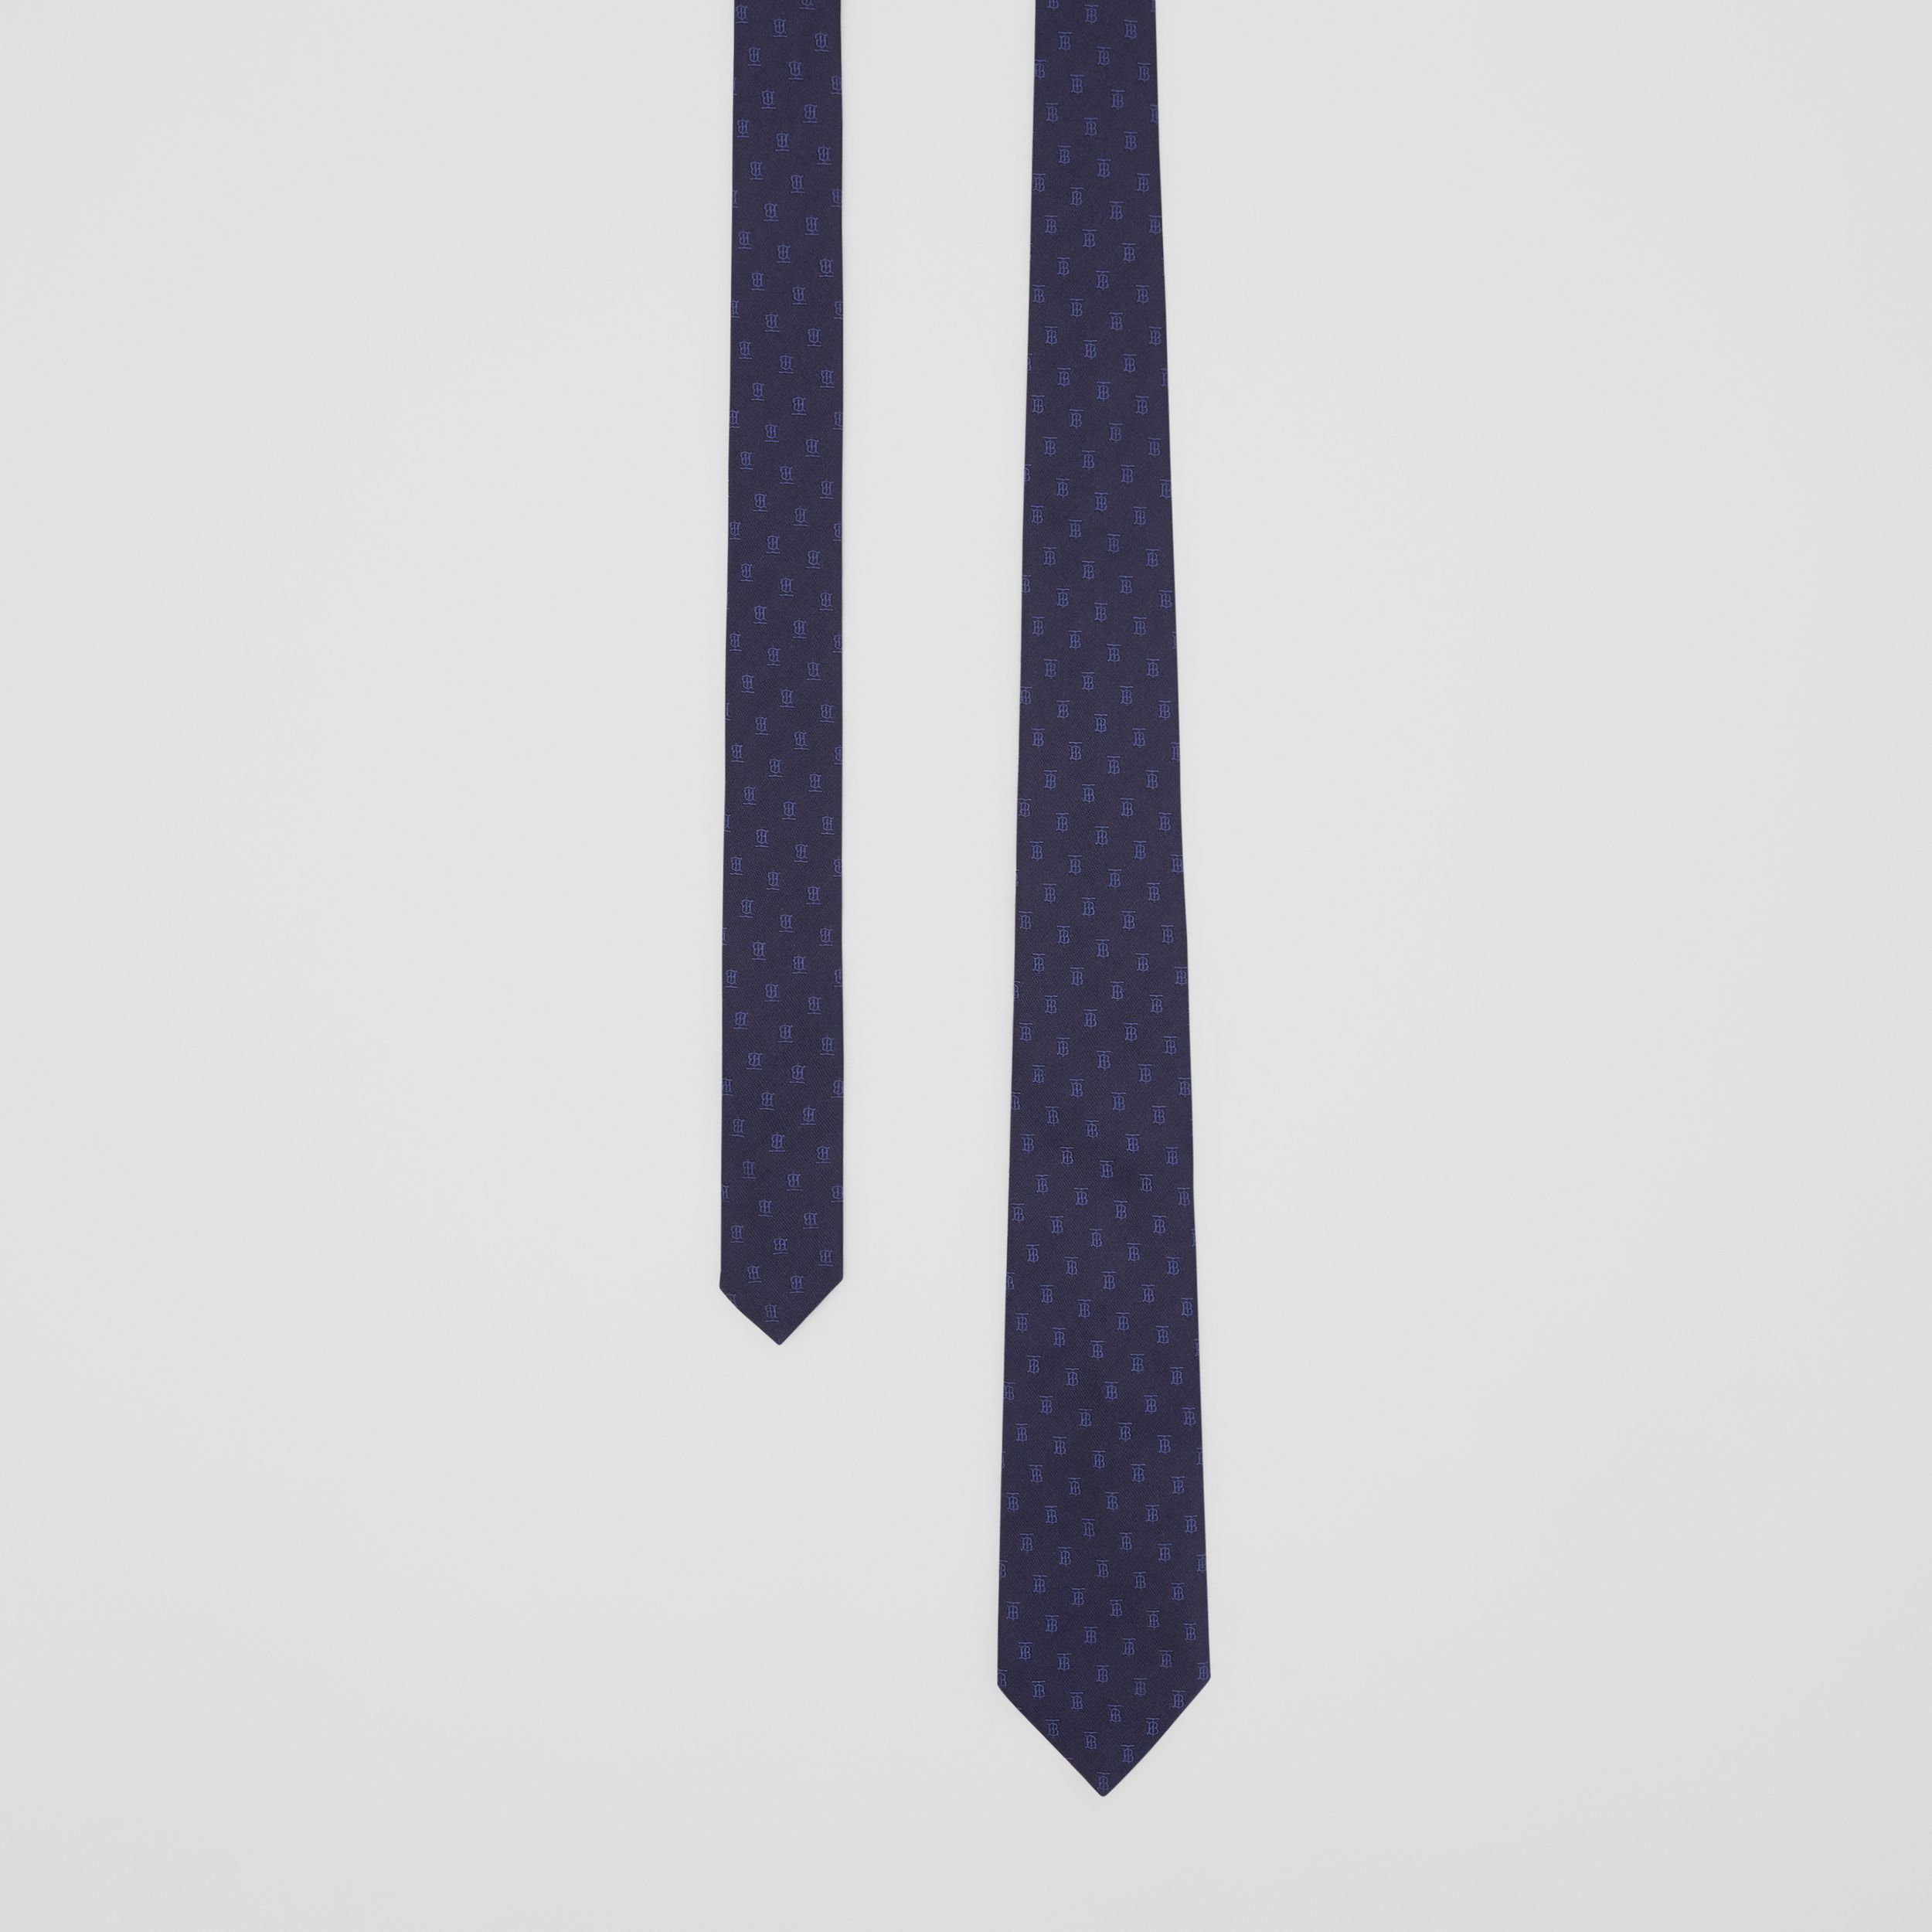 Classic Cut Monogram Motif Silk Jacquard Tie in Navy - Men | Burberry Canada - 1